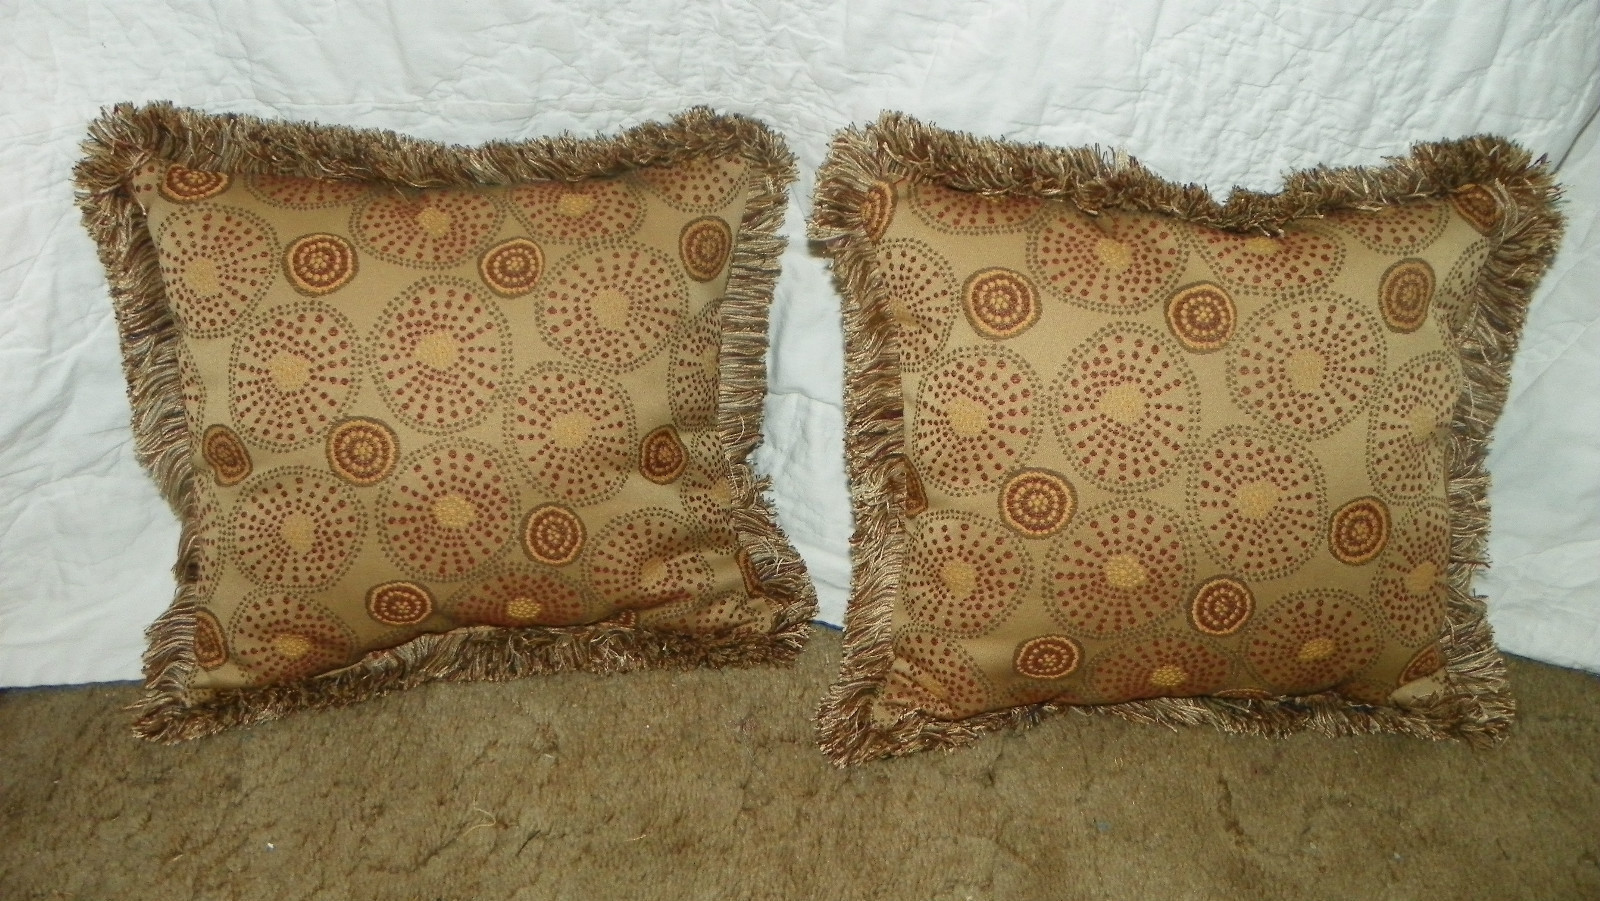 Pair Gold Russet Retro Print Pillows / Throw Pillows 15 x 15 - Pillows